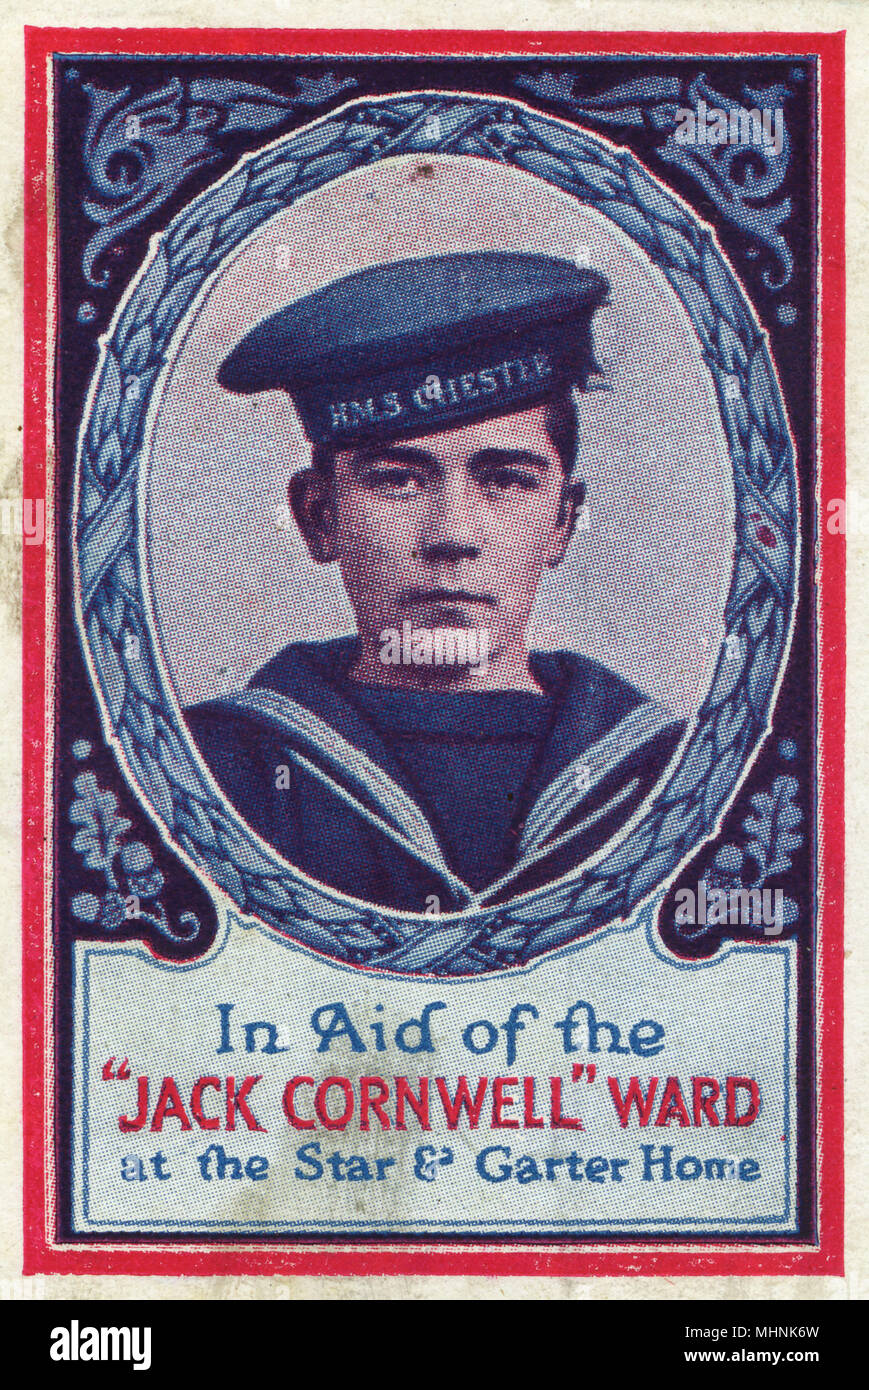 John Travers Cornwell charity stamp, sold to raise funds for the 'Jack Cornwell' ward at the Star & Garter home, Richmond, founded in 1916. The Victoria Cross was posthumously awarded to John Travers Cornwell (1900-1916) - for his gallantry at the Battle of Jutland. Cornwell was a Boy Seaman First Class on H.M.S Chester. H.M.S Chester was on the front lines at the Battle of Jutland and came under fire from four Kaiserliche Marine cruisers. John was the sole survivor of all the gun turret positions and remained at his position, though severely wounded, until the battle ended. He died in hos - Stock Image